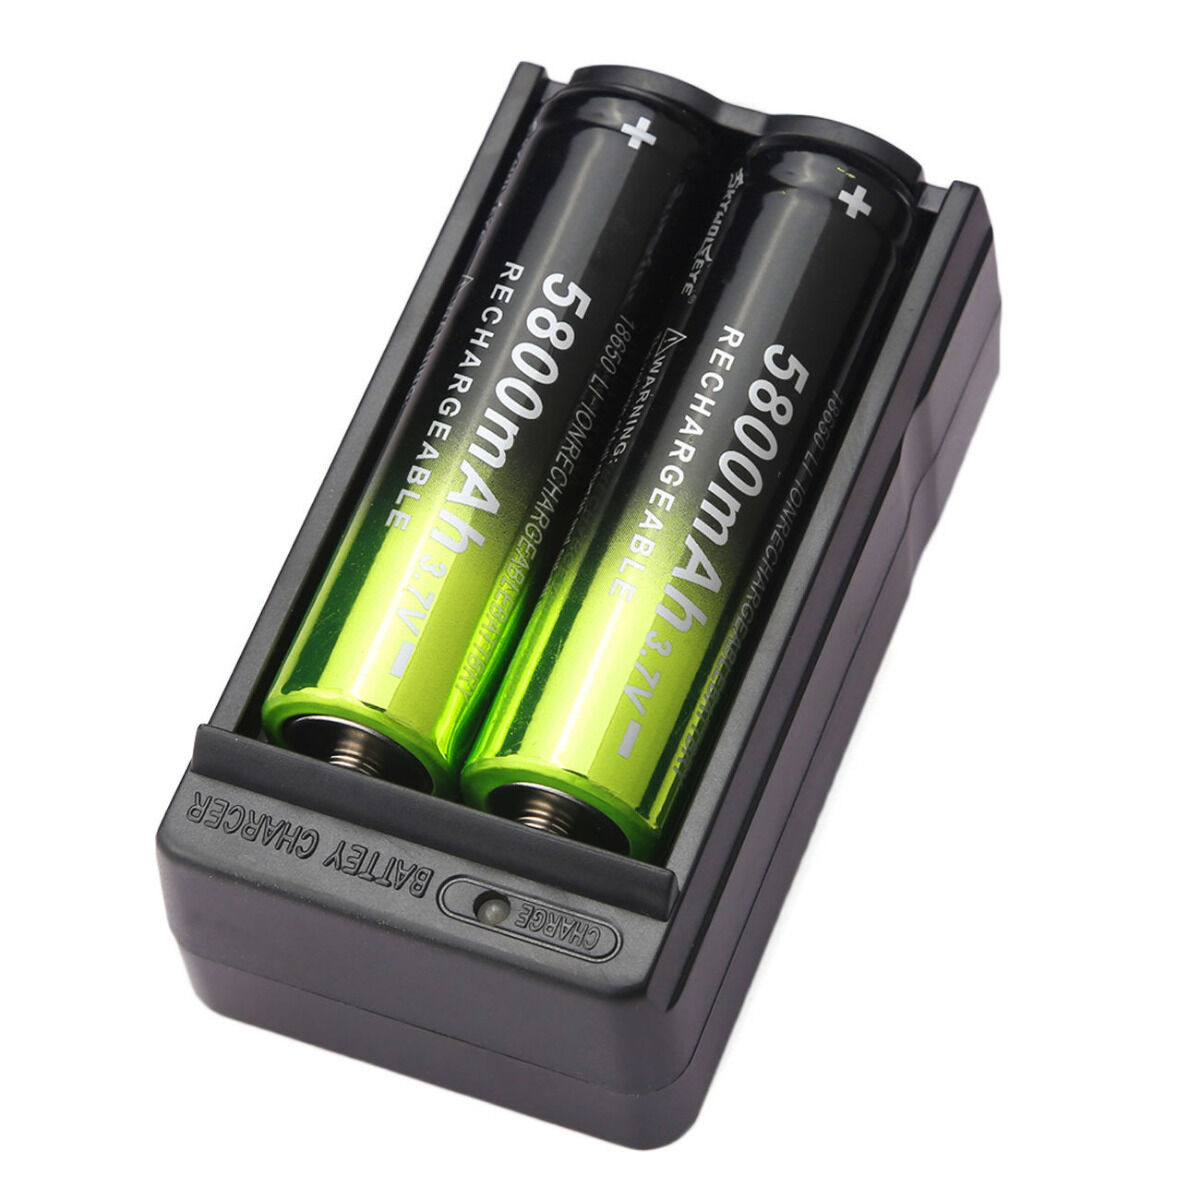 4X SKYWOLFEYE 18650 Battery 5800mAh Li-ion 3.7V Rechargeable Batteries + Charger